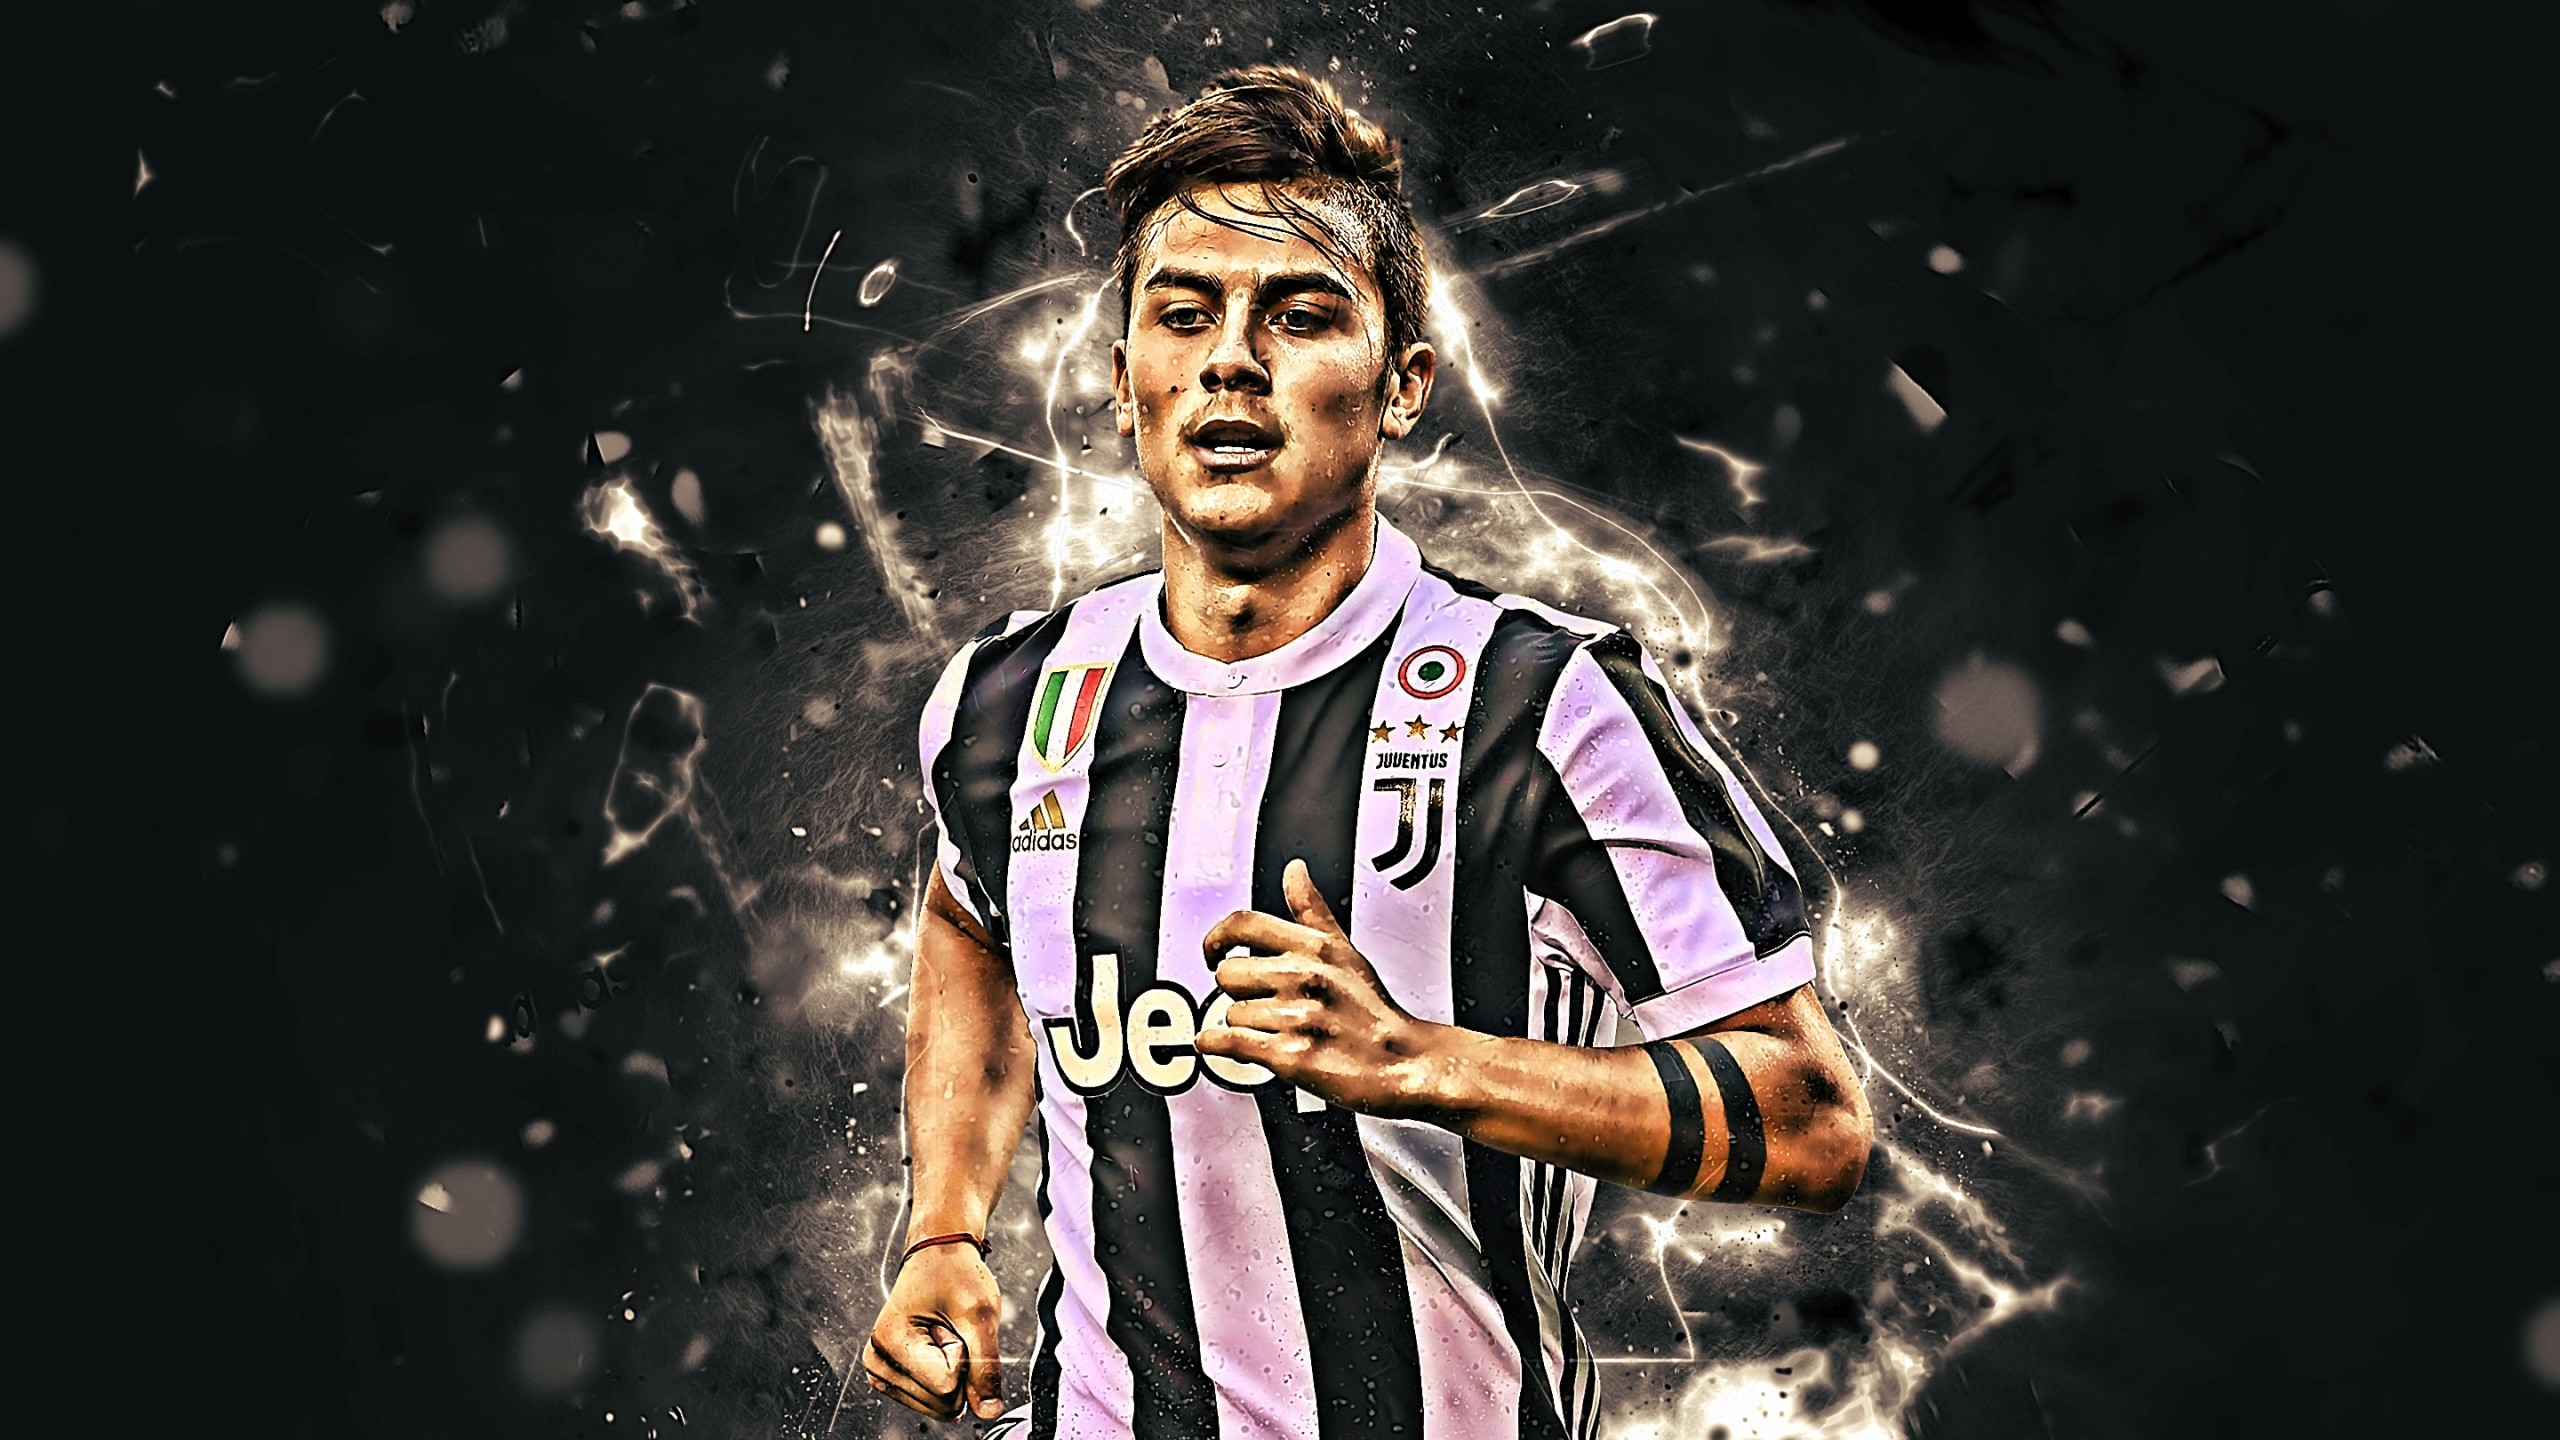 Paulo Dybala Argentine Football Player Wallpapers Hd Paulo